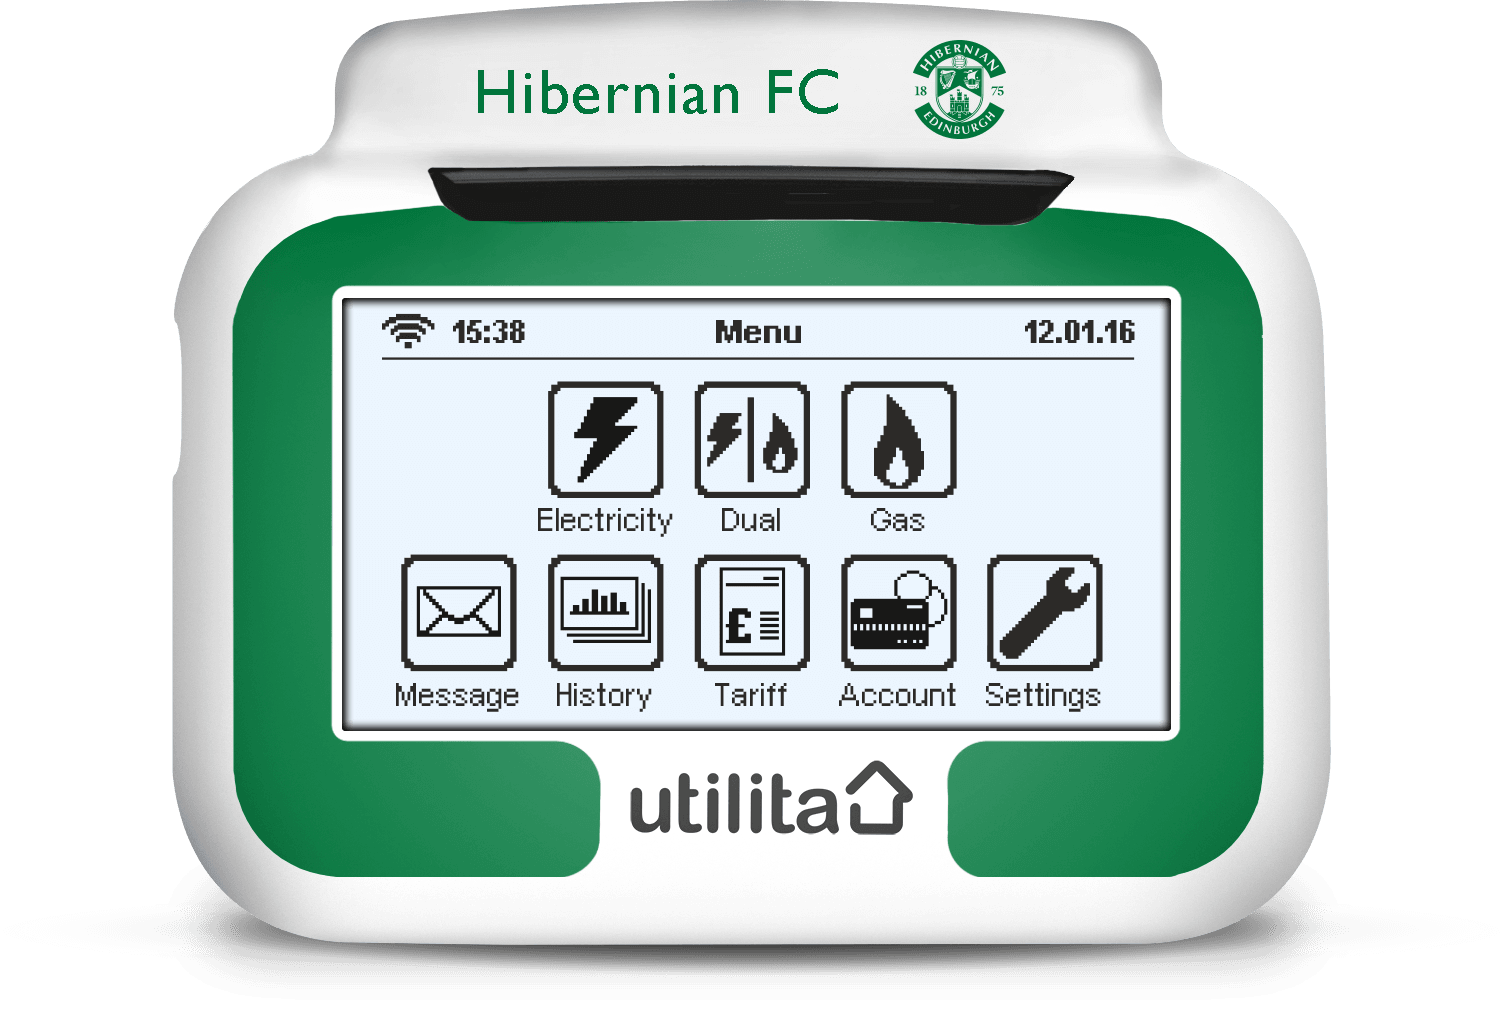 hibernian In-Home Display Cover